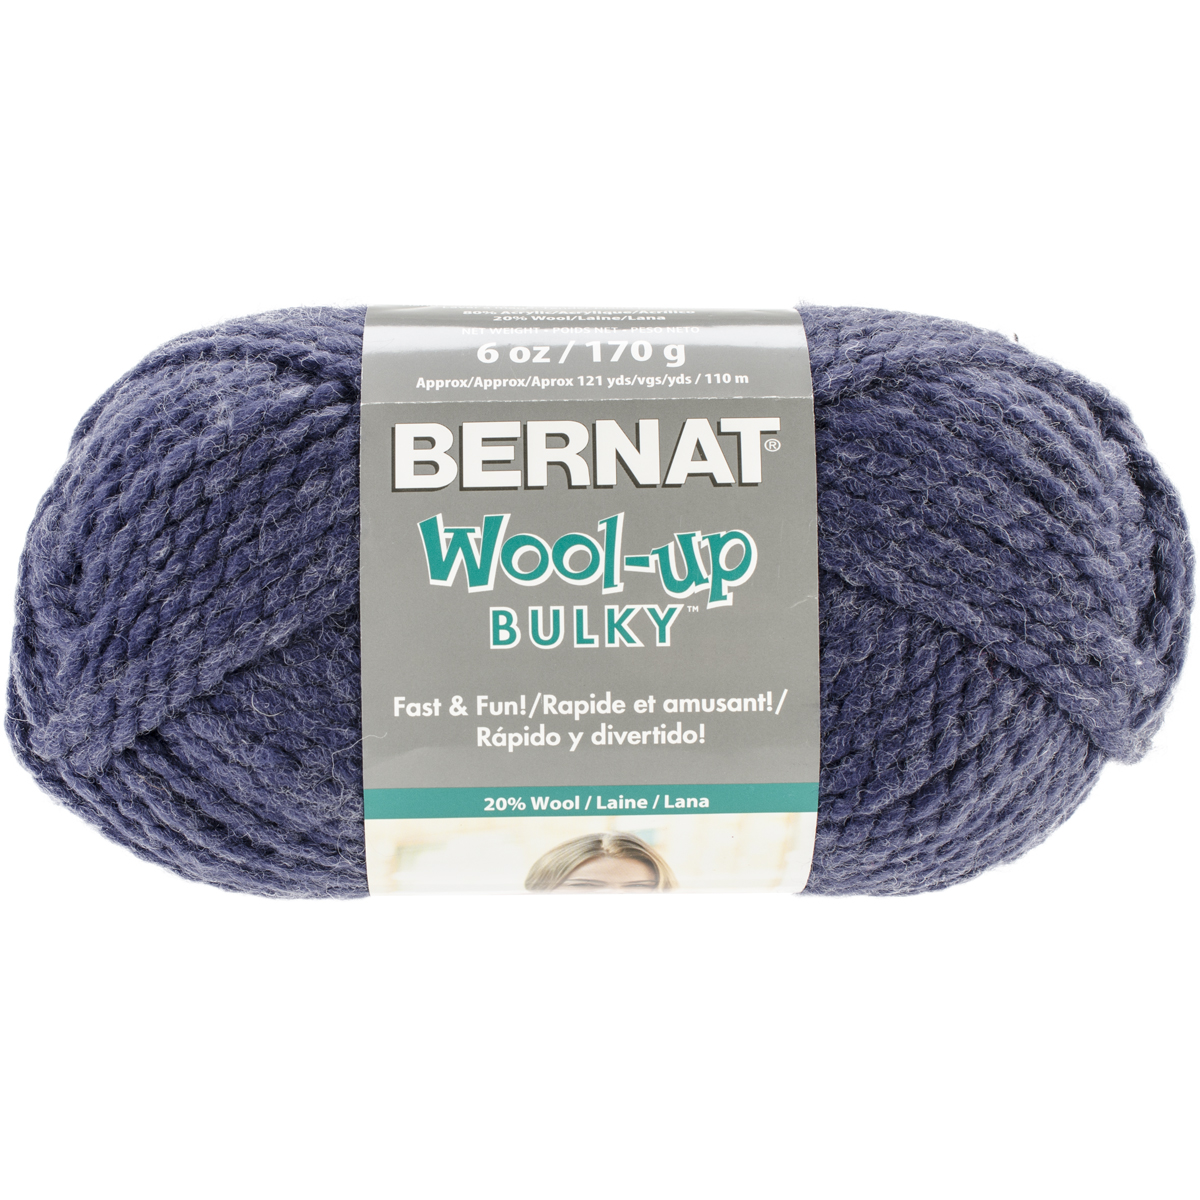 Spinrite Wool-Up Bulky Yarn, Denim Multi-Colored